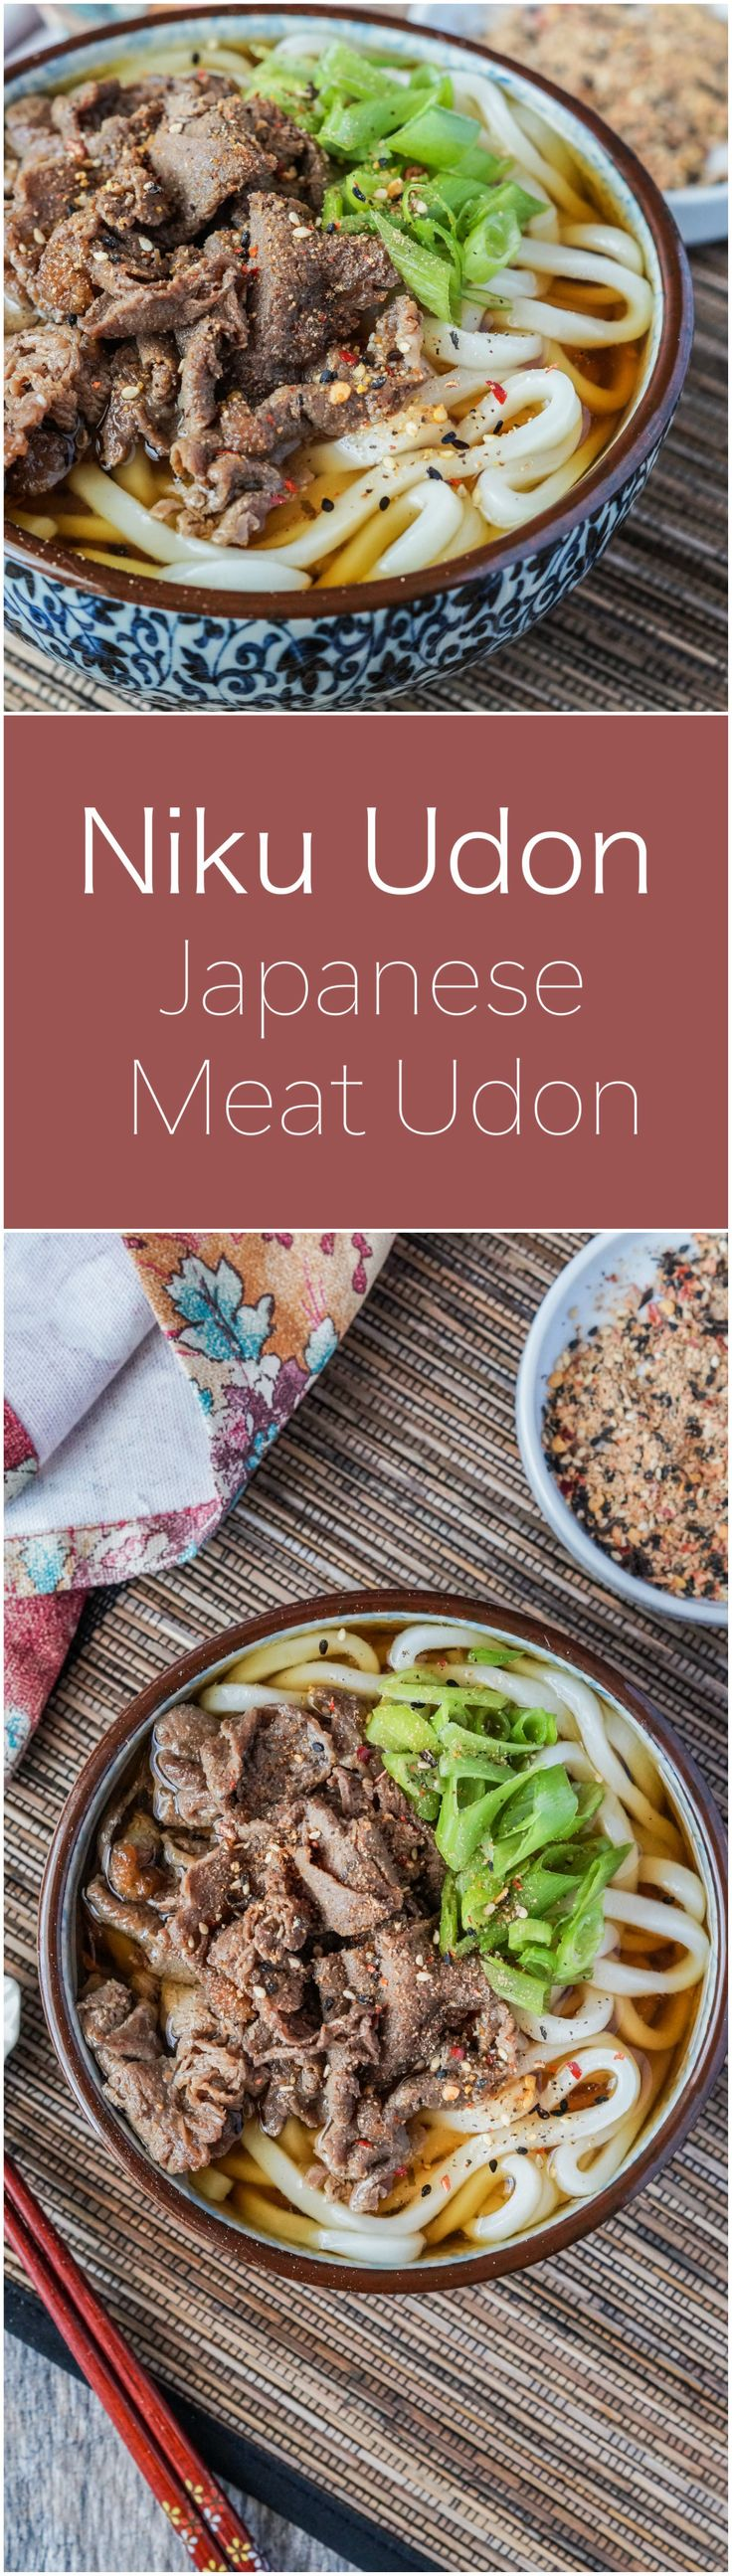 Recipe for Niku Udon- a Japanese noodle soup with a seasoned dashi base, thick udon noodles, and thinly sliced and marinated beef.